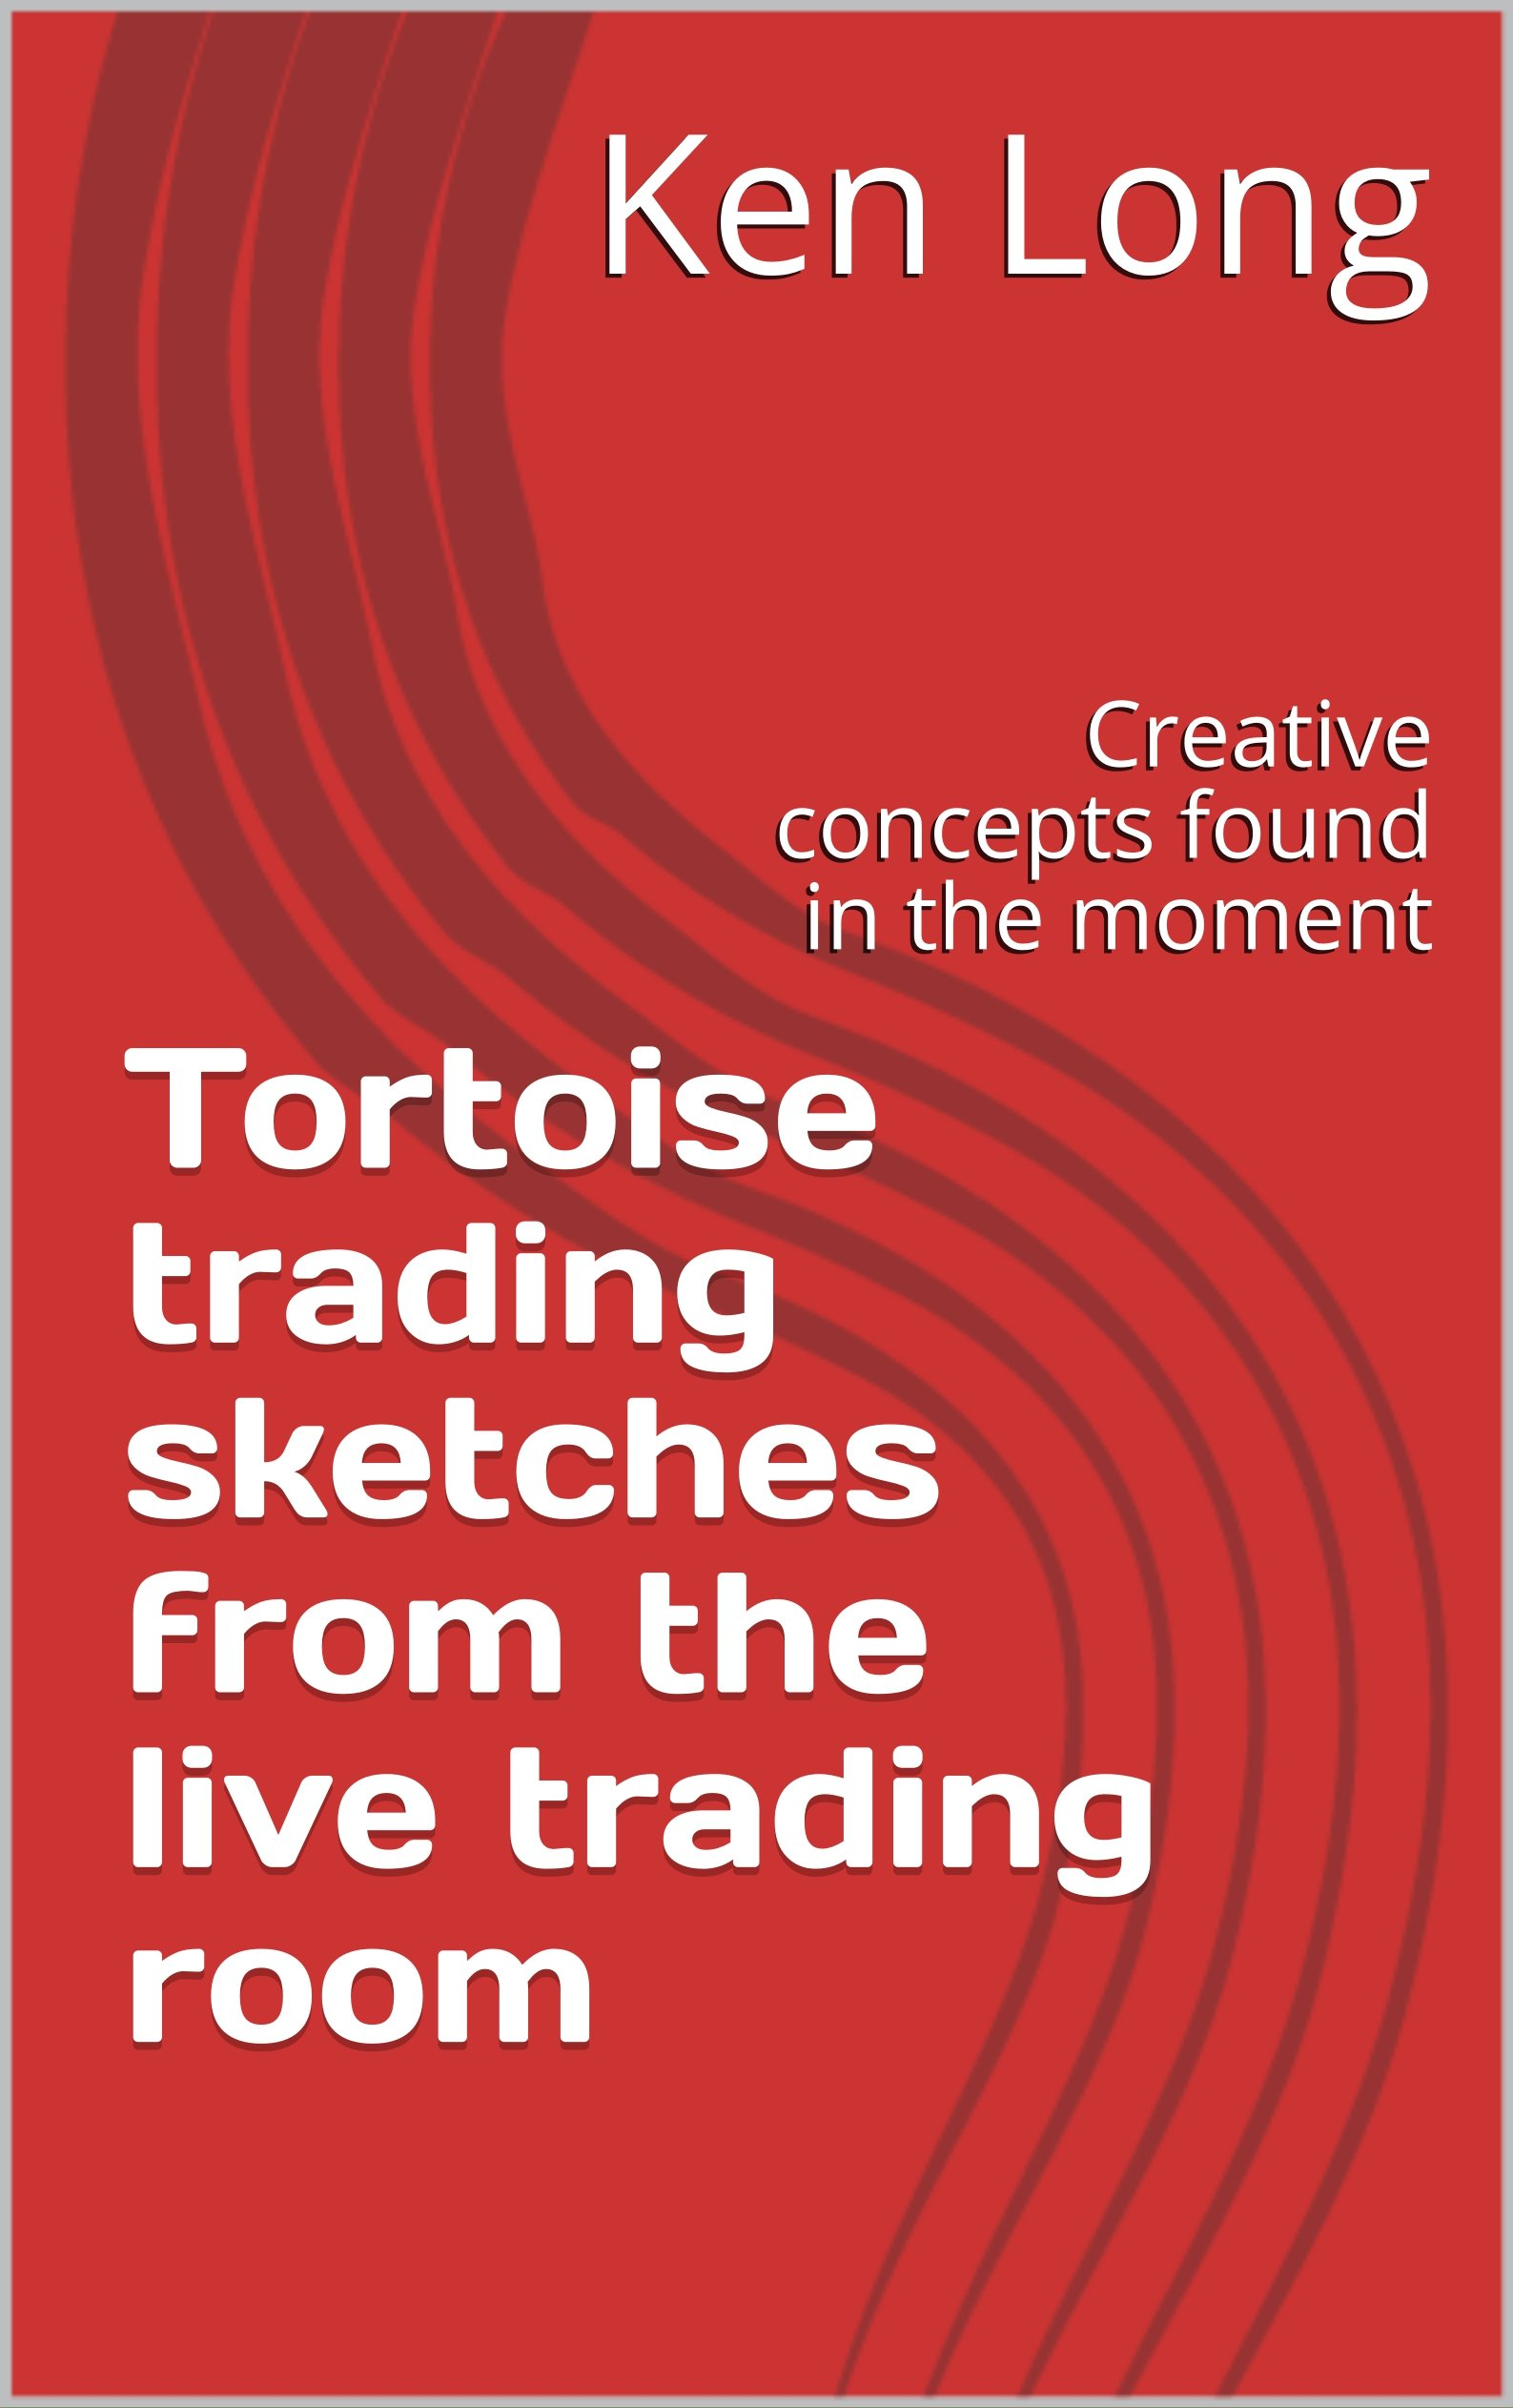 Tortoise trading sketches from the live trading room: Creative concepts found in the moment